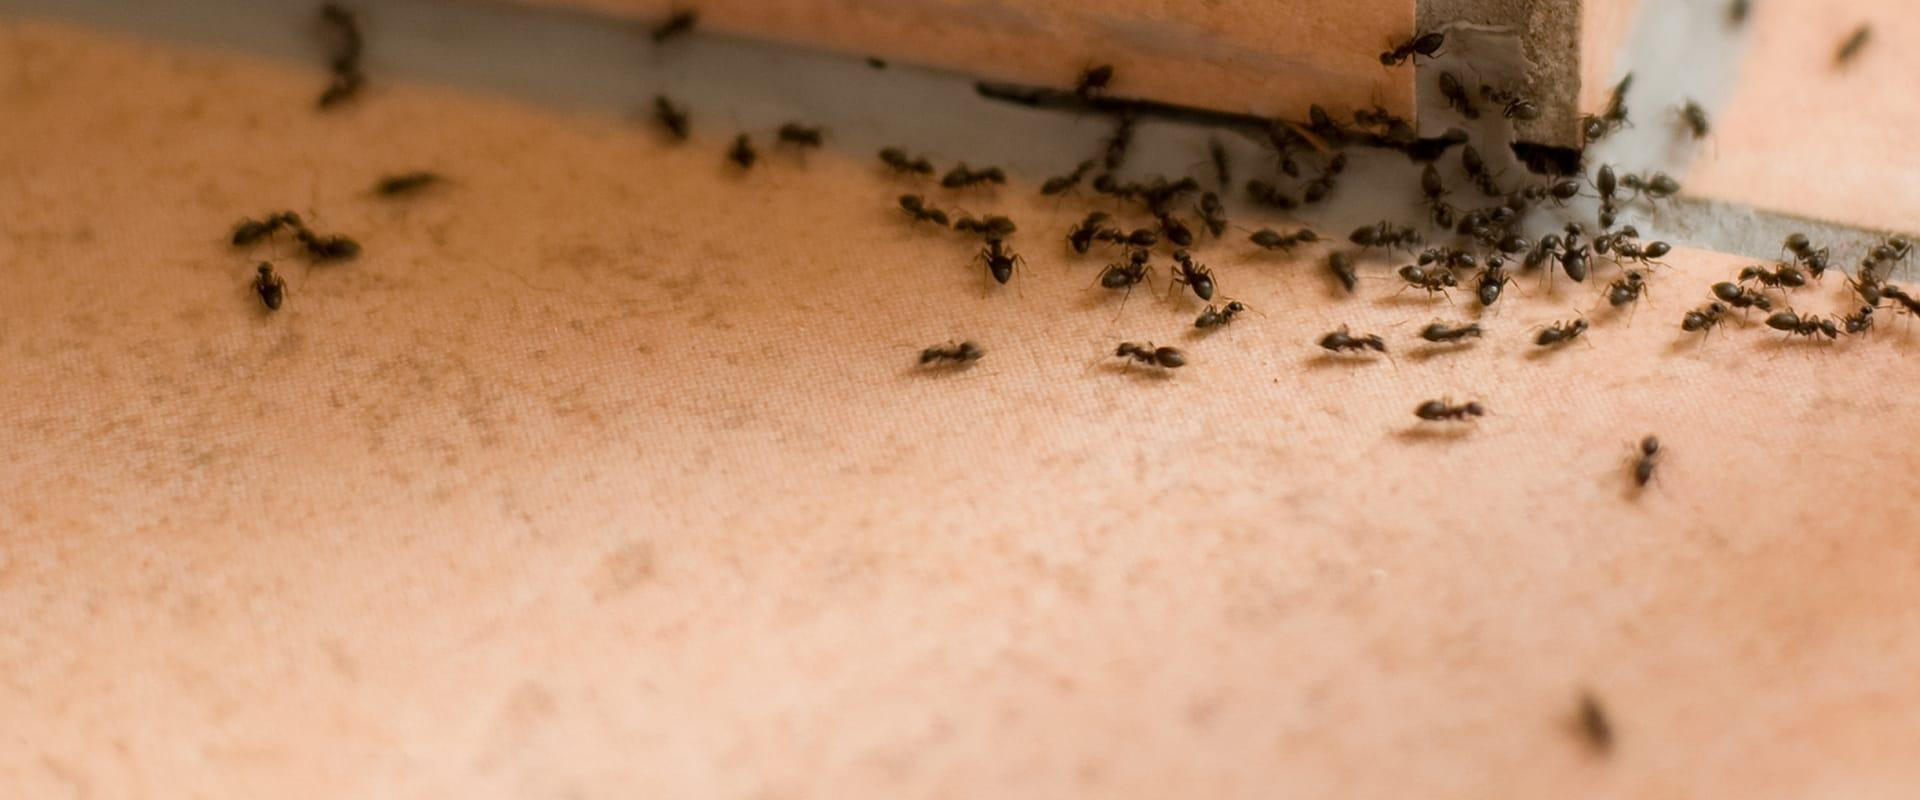 many ants crawling inside of a home in austin texas